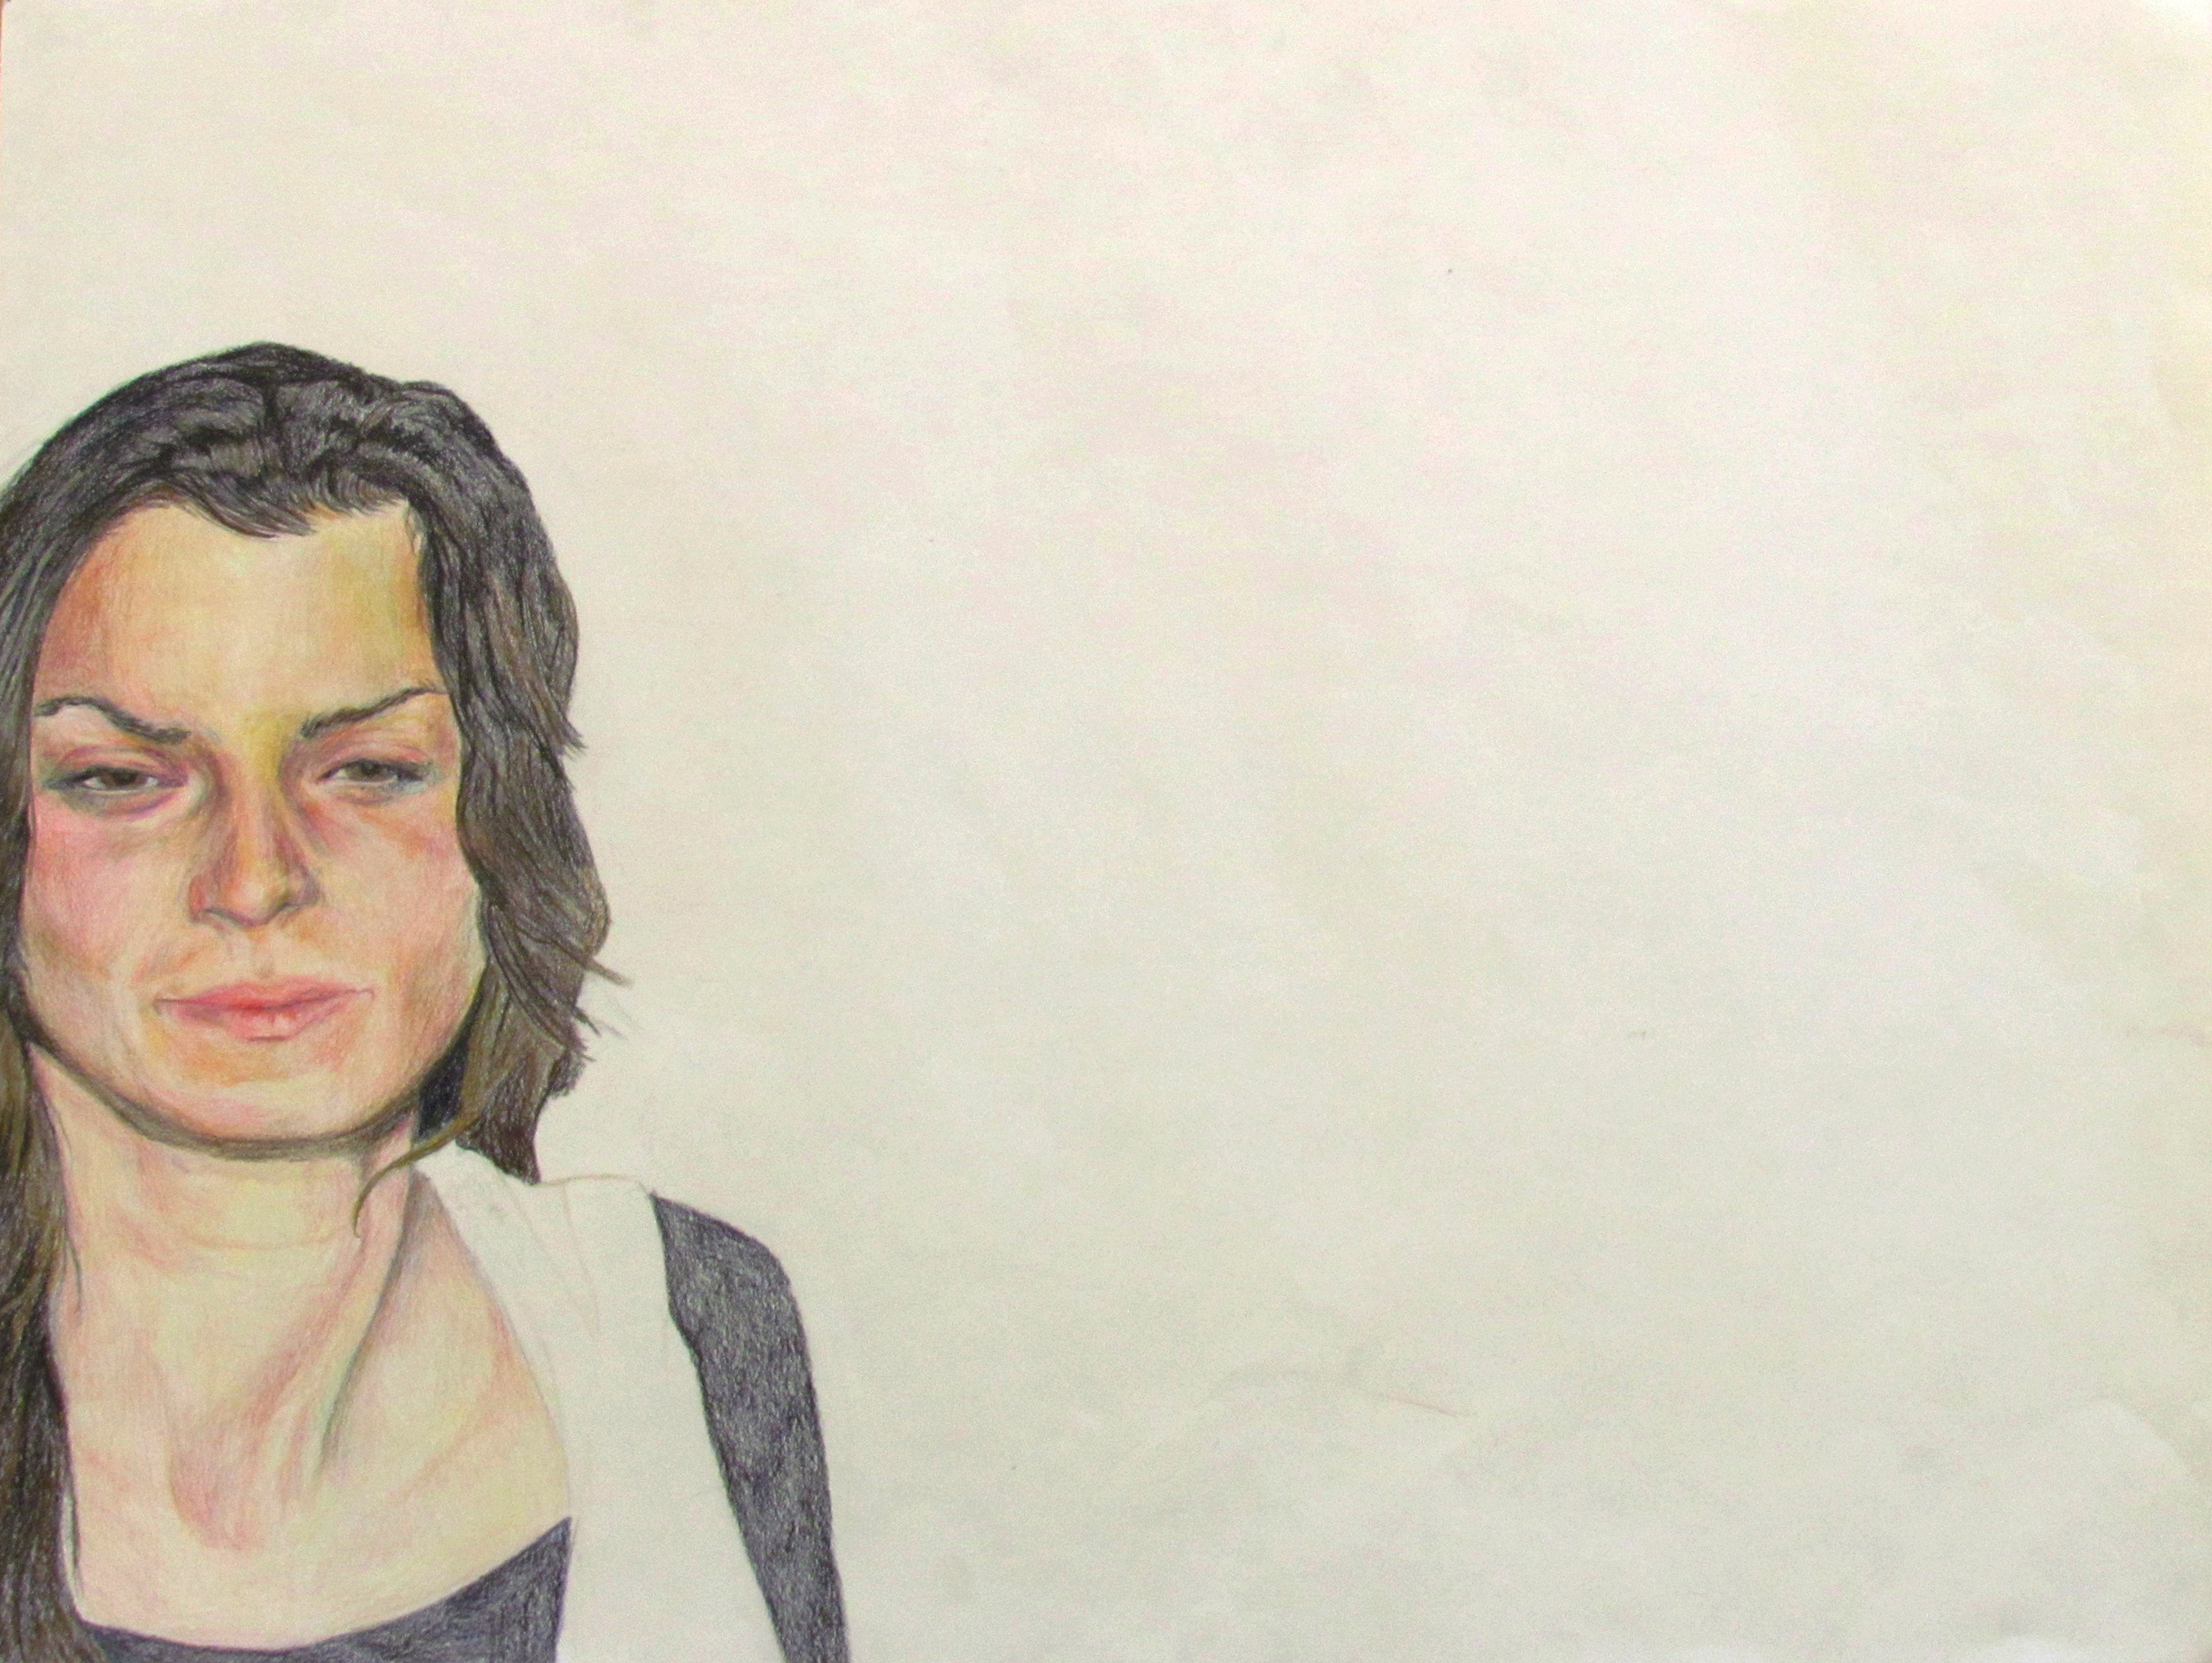 Sarah's Response to a Flash , 2010, Colored Pencil on Paper,30 inches (76.2 cm) x 40 inches (101.6 cm)